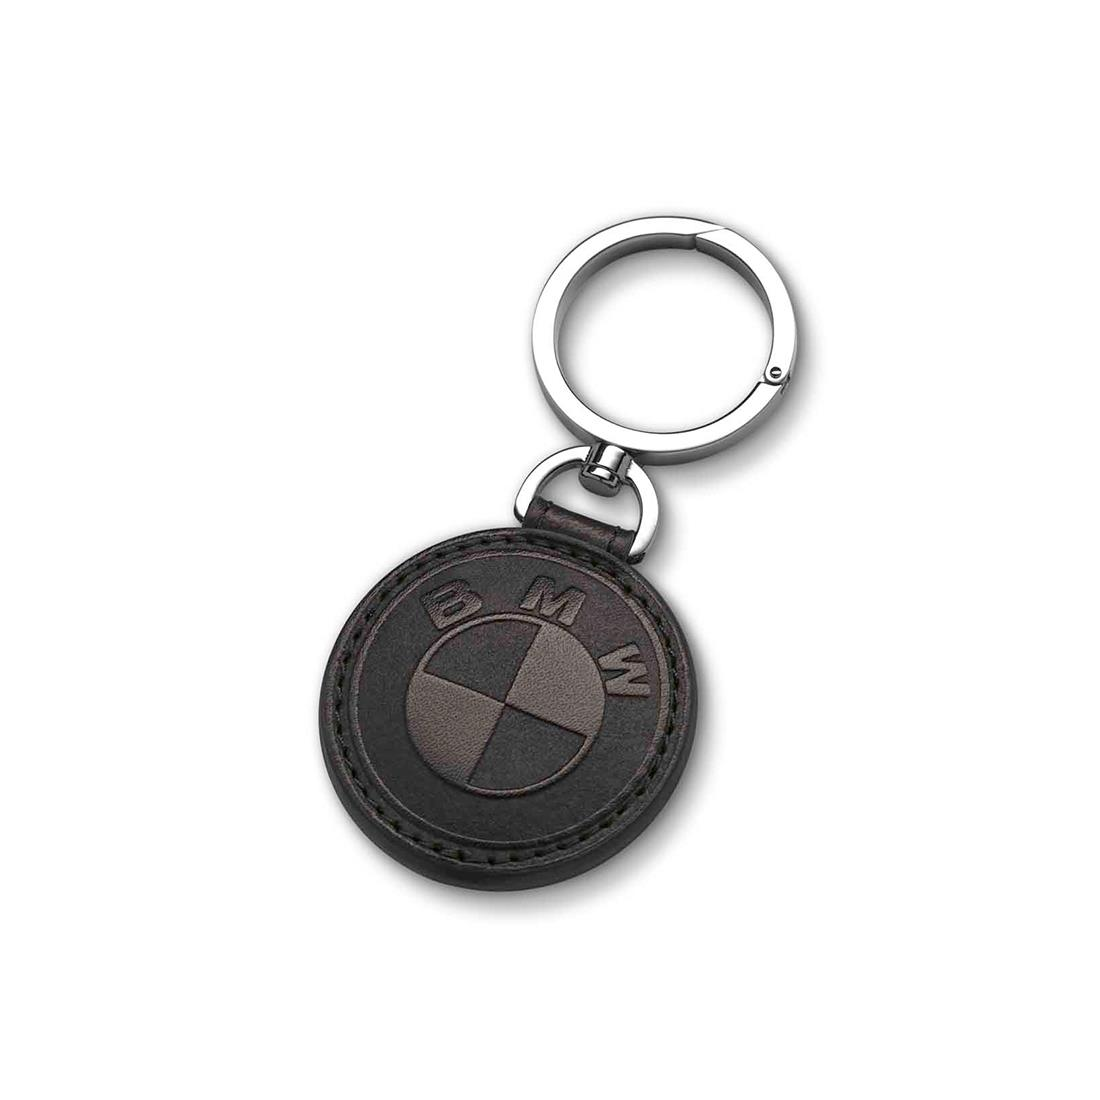 BMW KEYRING, LEATHER